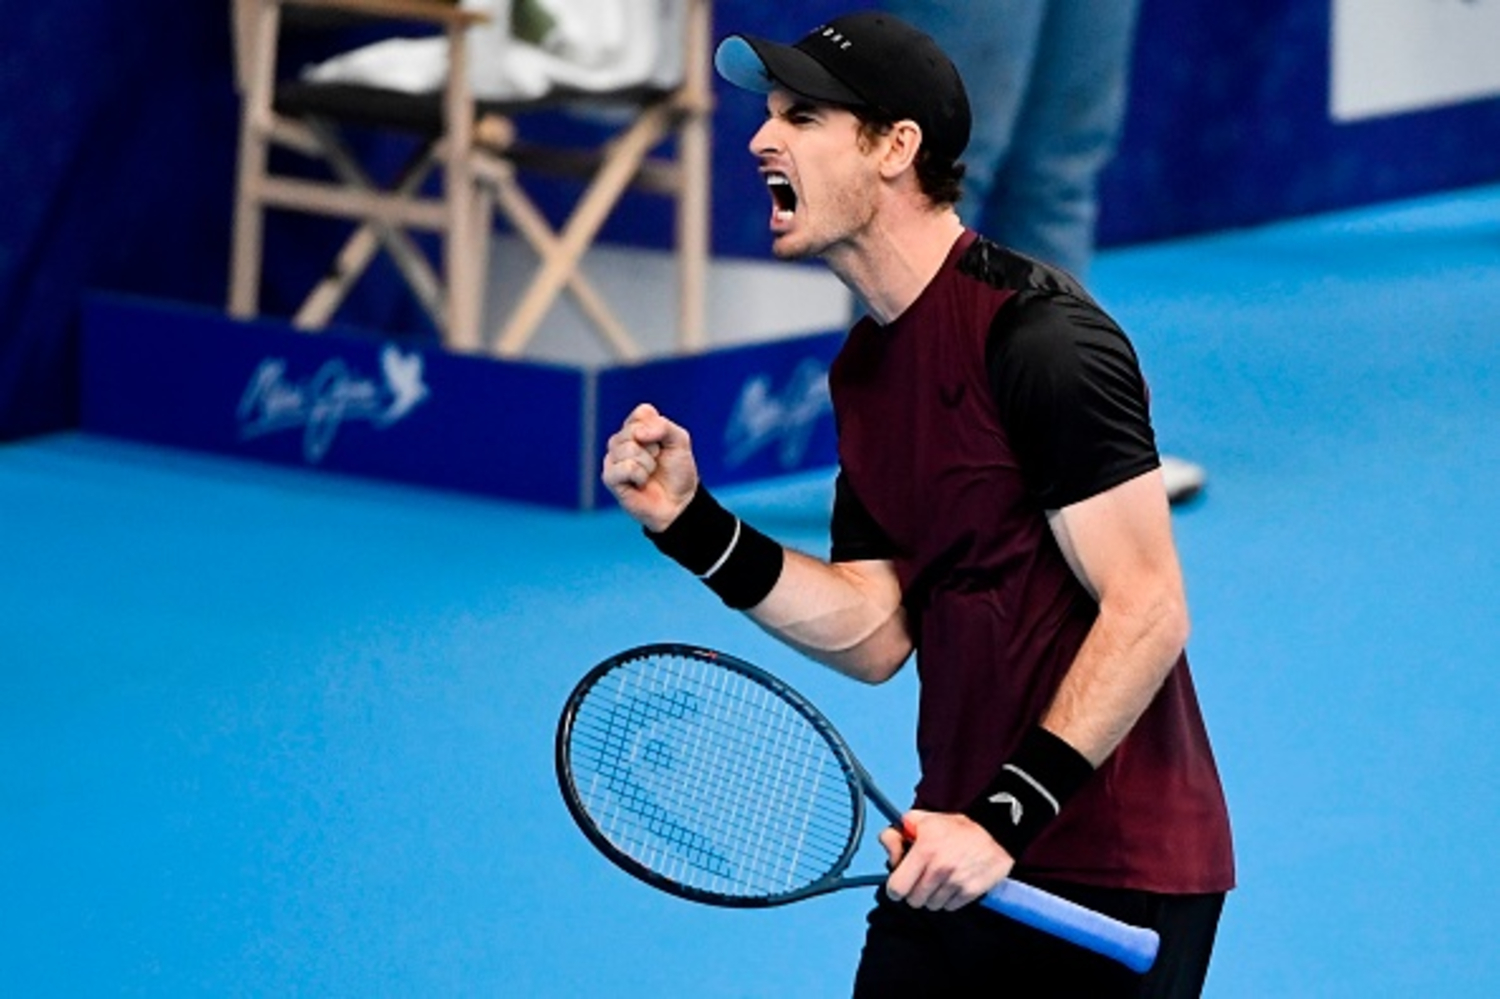 Taking a look at Andy Murray's net worth